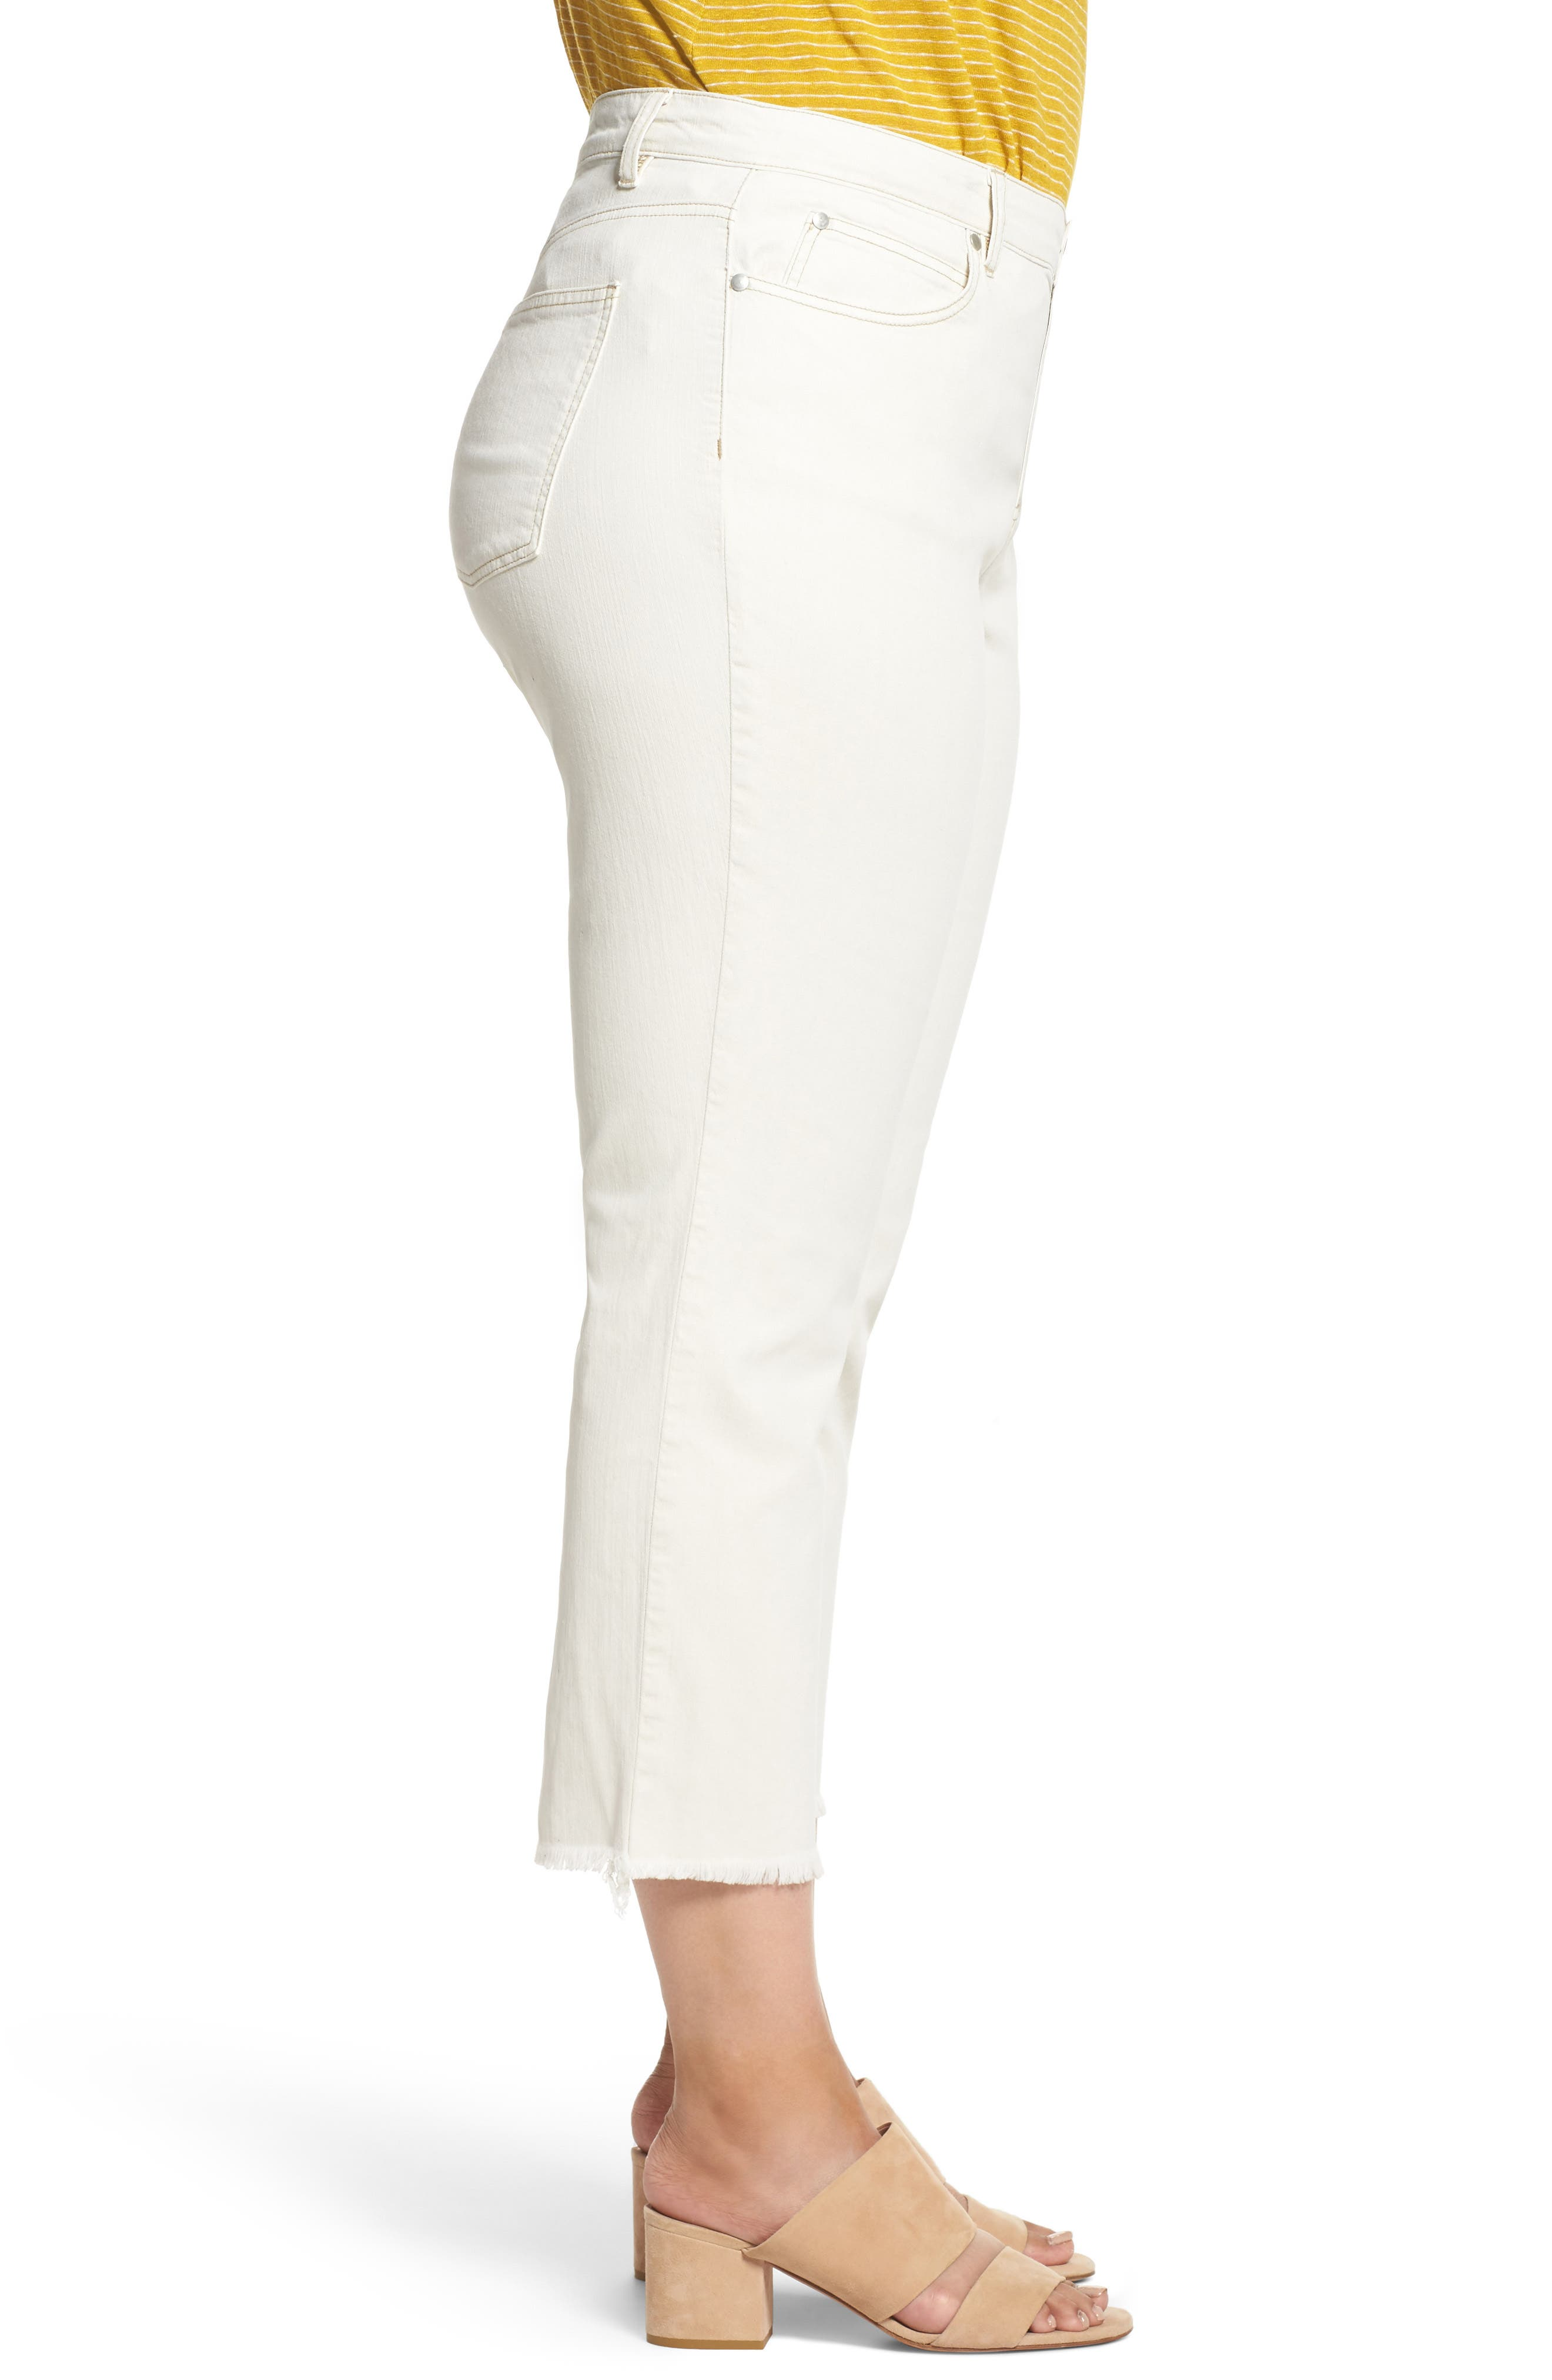 Stretch Organic Denim Crop Jeans,                             Alternate thumbnail 3, color,                             Undyed Natural